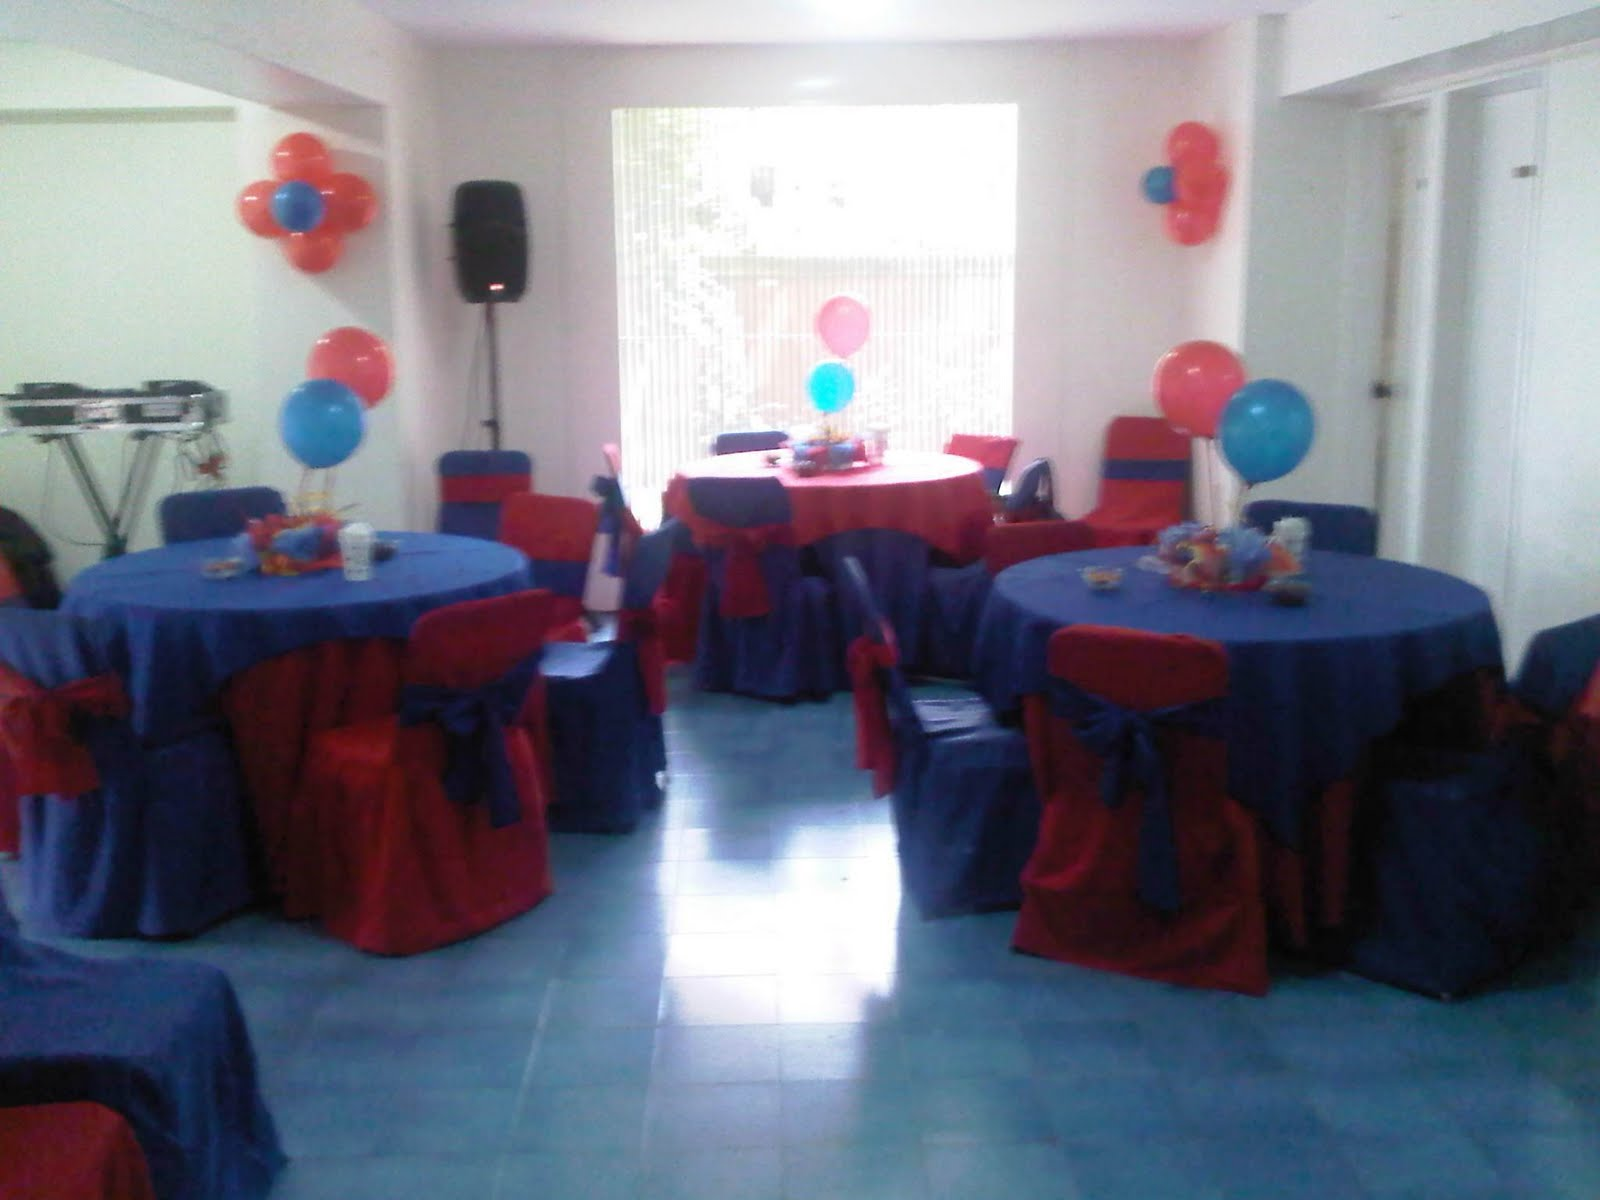 Evento fiesta infantil servicio decoracion de salon for Decoracion salon infantil